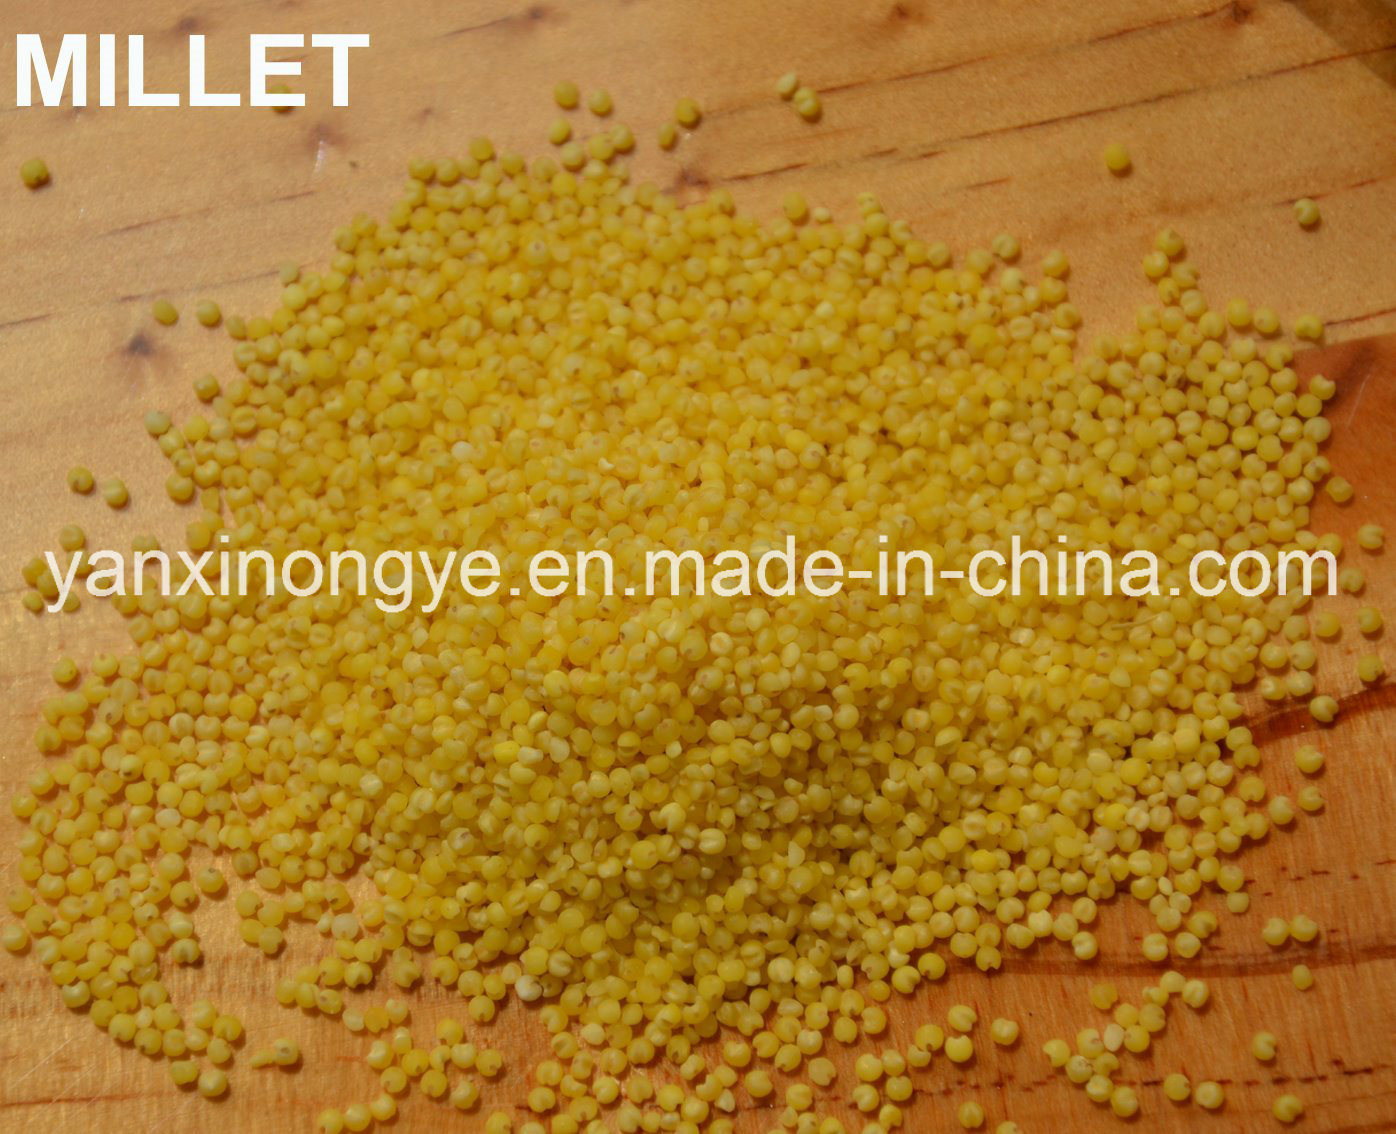 Highly Nutrition Nourishing Yellow Hulled Millet Organic Selenium Millet pictures & photos